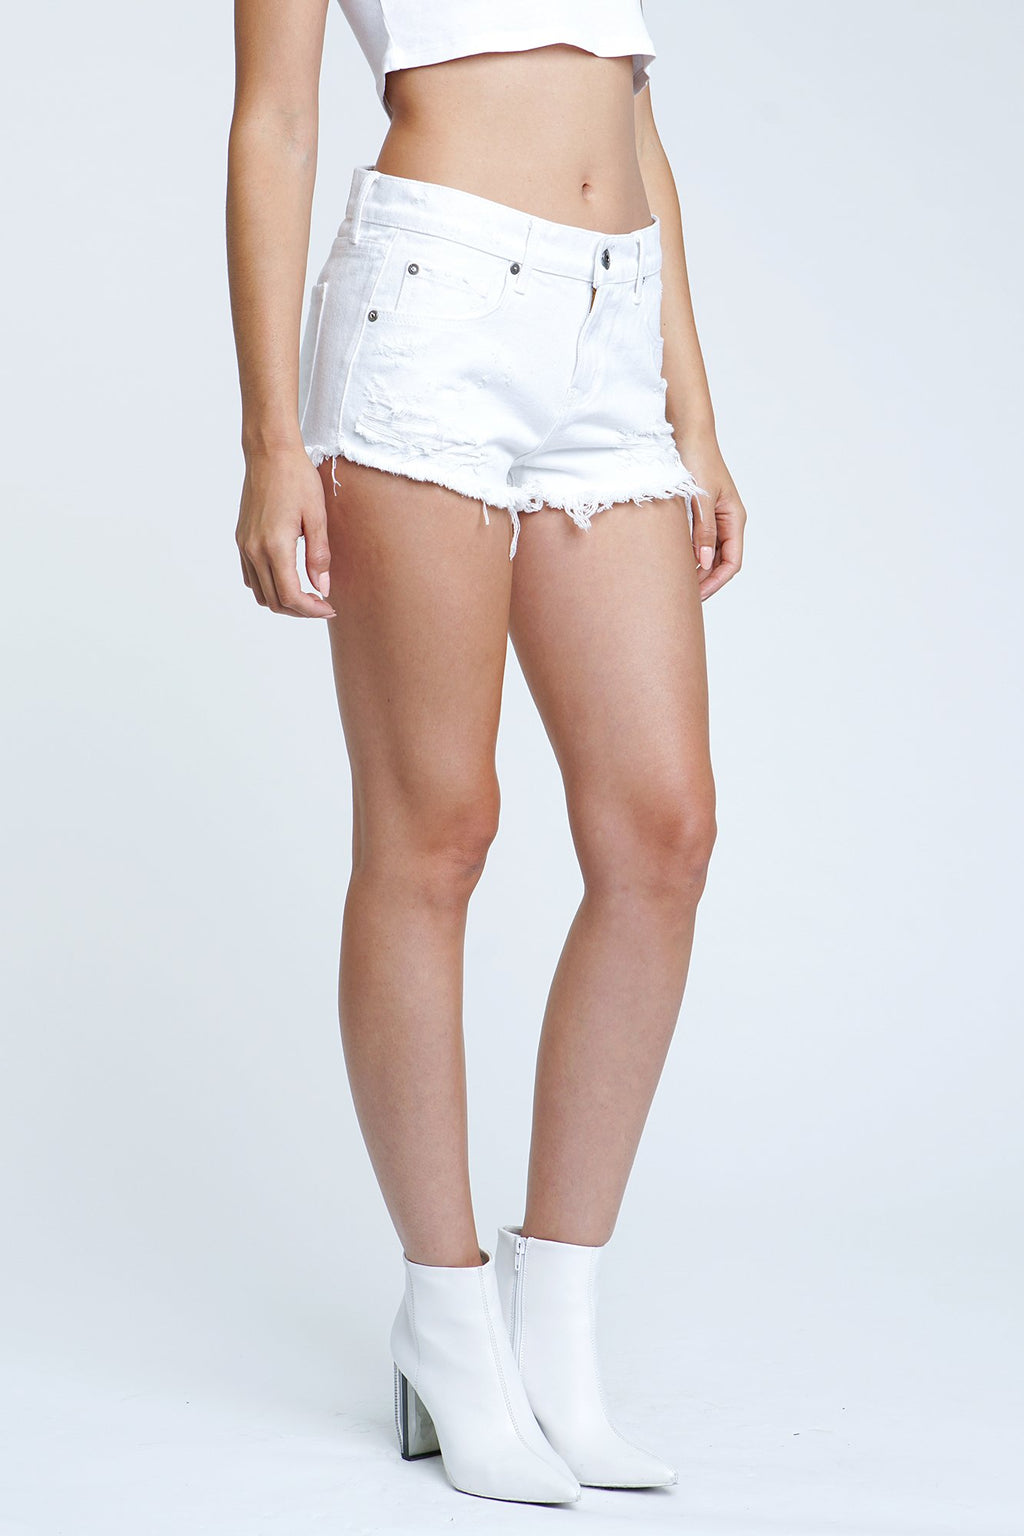 Gigi Low Rise Cut Off - White Lies